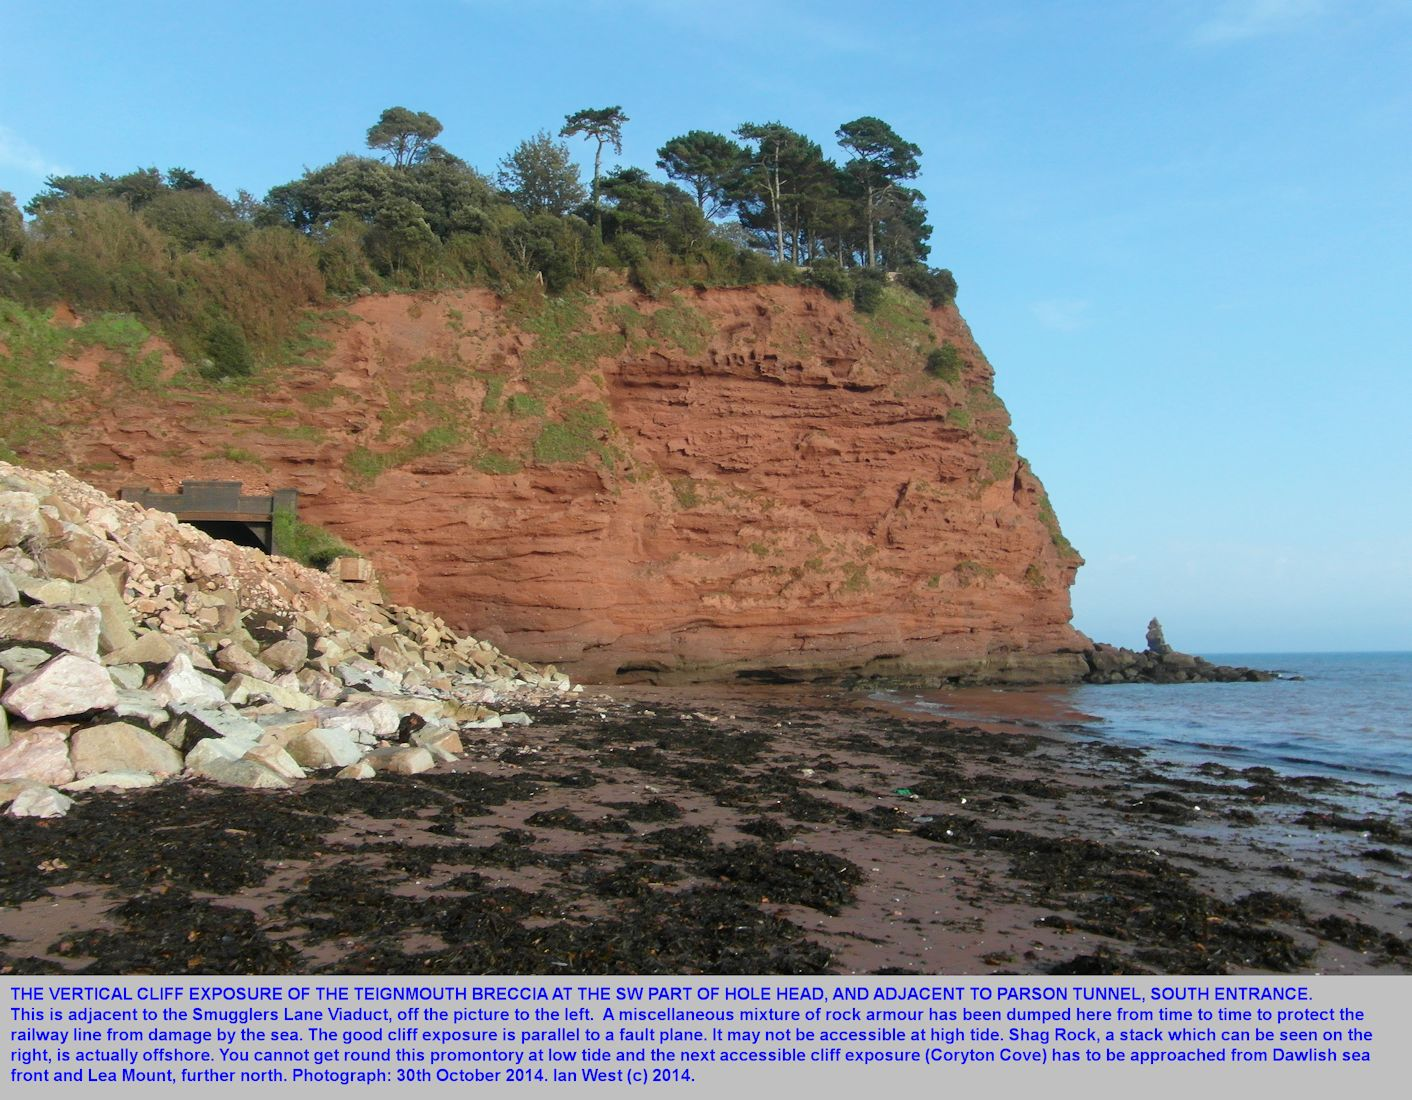 Southwestern Hole Head near Smugglers Lane, Dawlish, Devon, 30th October 2014